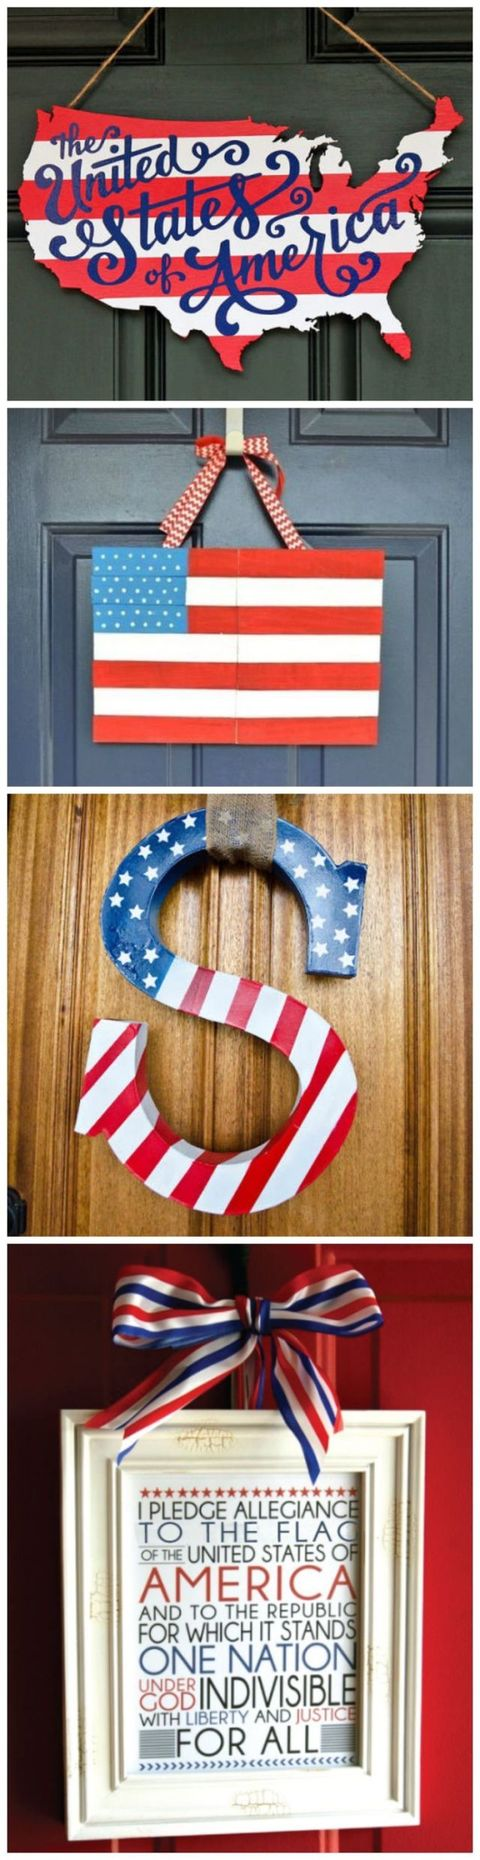 "<p>American pride is alive and well all year 'round — but especially in July, when it's time to <a href=""http://www.goodhousekeeping.com/home/craft-ideas/g2489/american-diy-door-decor/?"" target=""_blank"">deck out the front door</a> with star spangled decor.</p><p><a href=""https://www.pinterest.com/pin/57702438952636799/"" target=""_blank""><em>Pin it here »</em></a></p>"